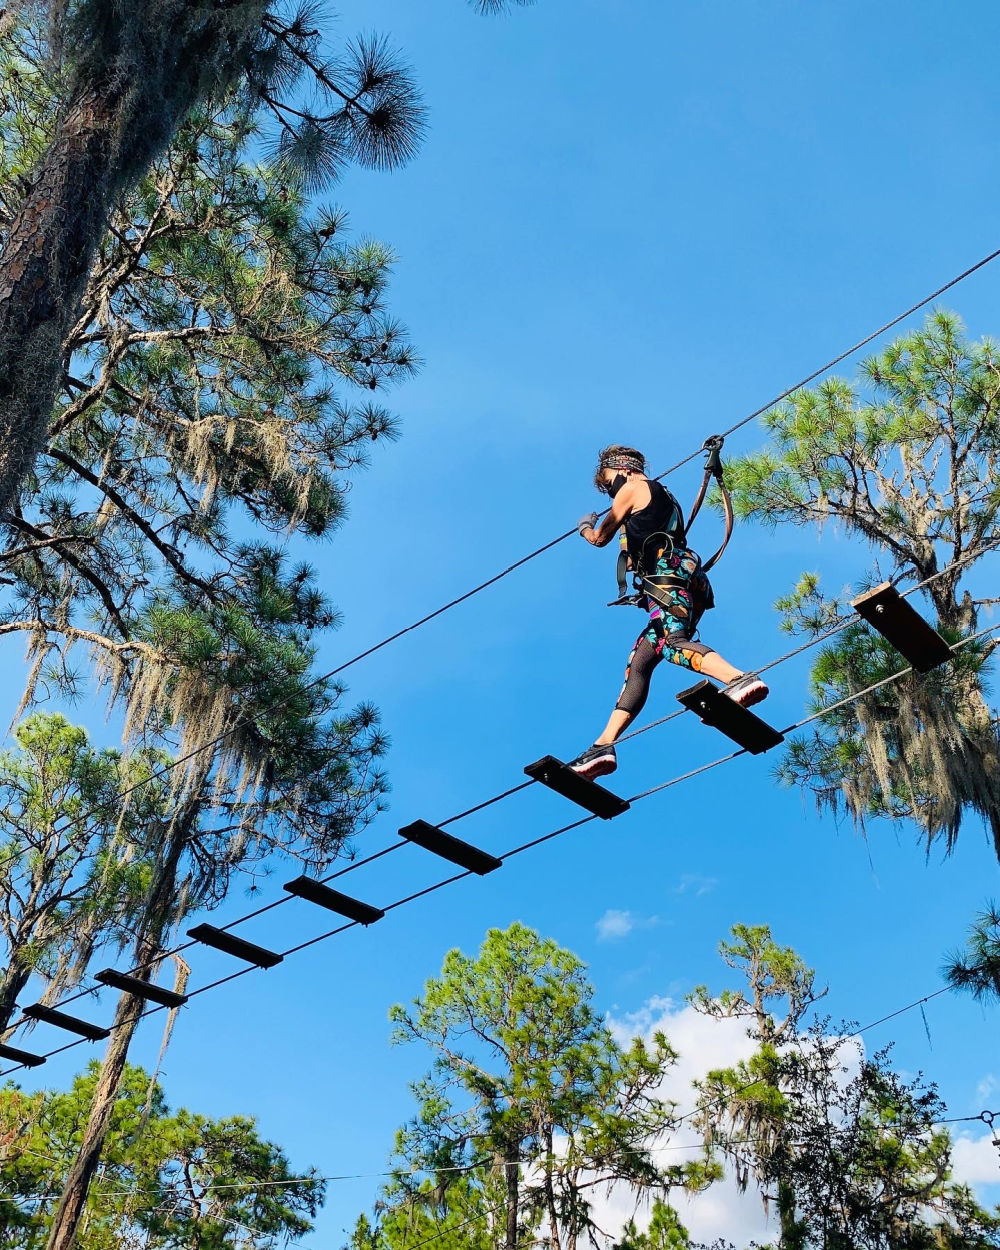 We have put together a list of 10 favorite Sarasota Florida outdoor activities that will surely inspire your next trip.